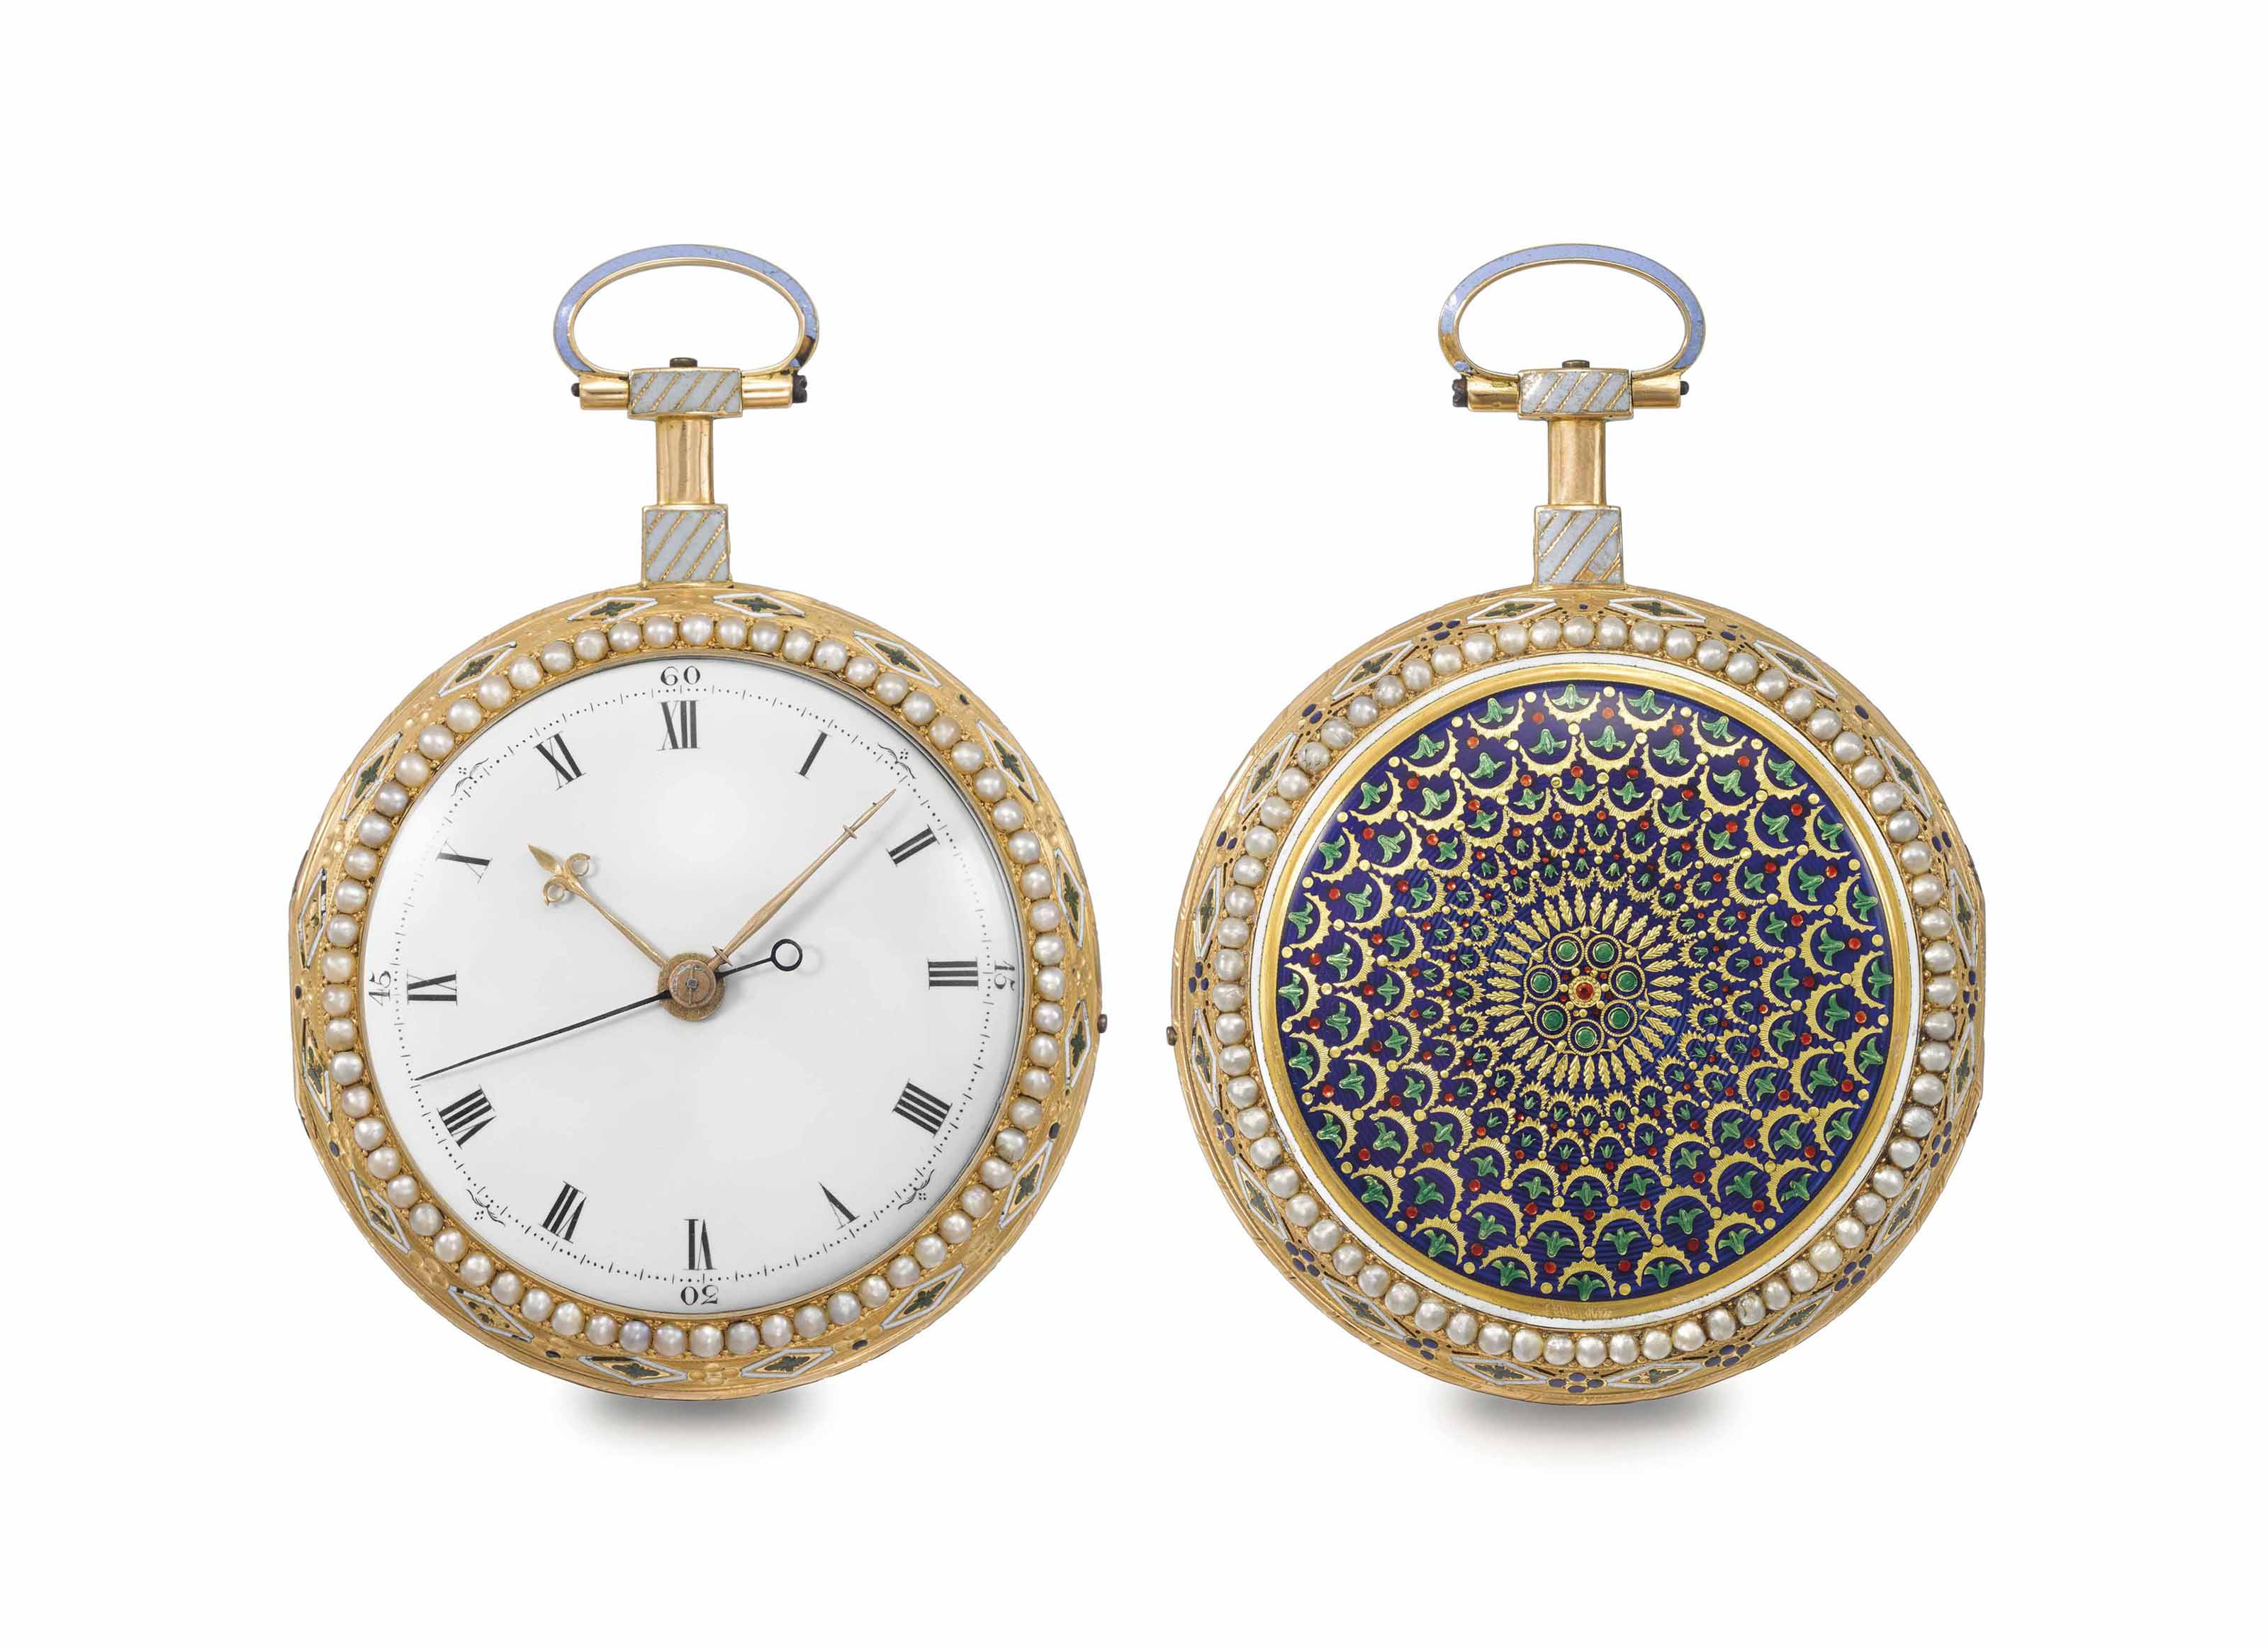 Swiss, attributed to Jaquet-Dr